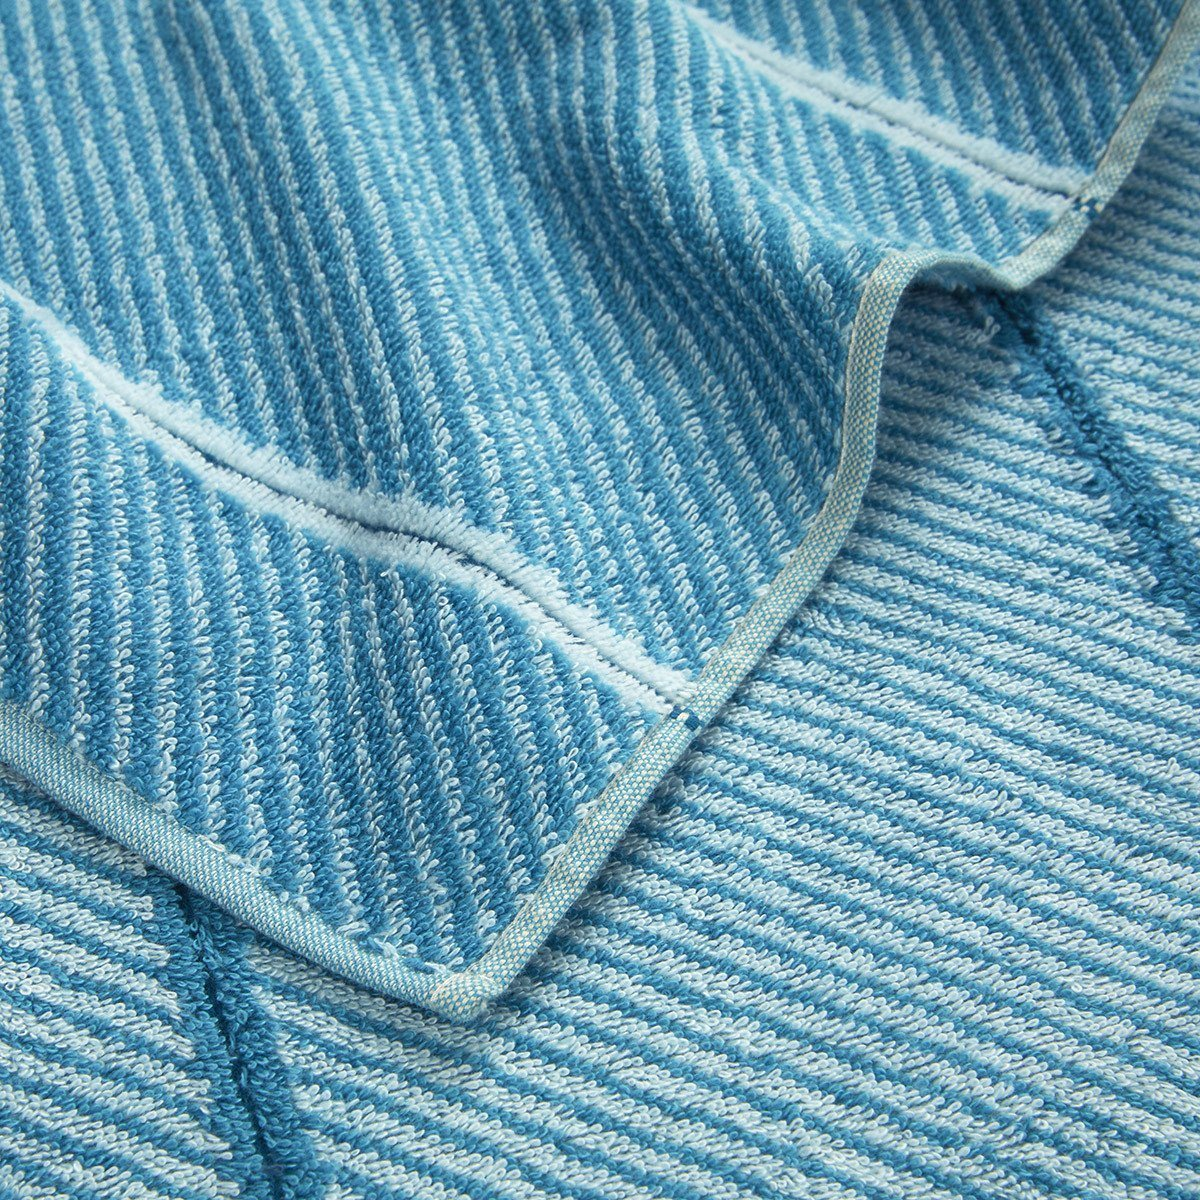 Fig Linens - Bermude Teal Bath Towels by Hugo Boss - Detail